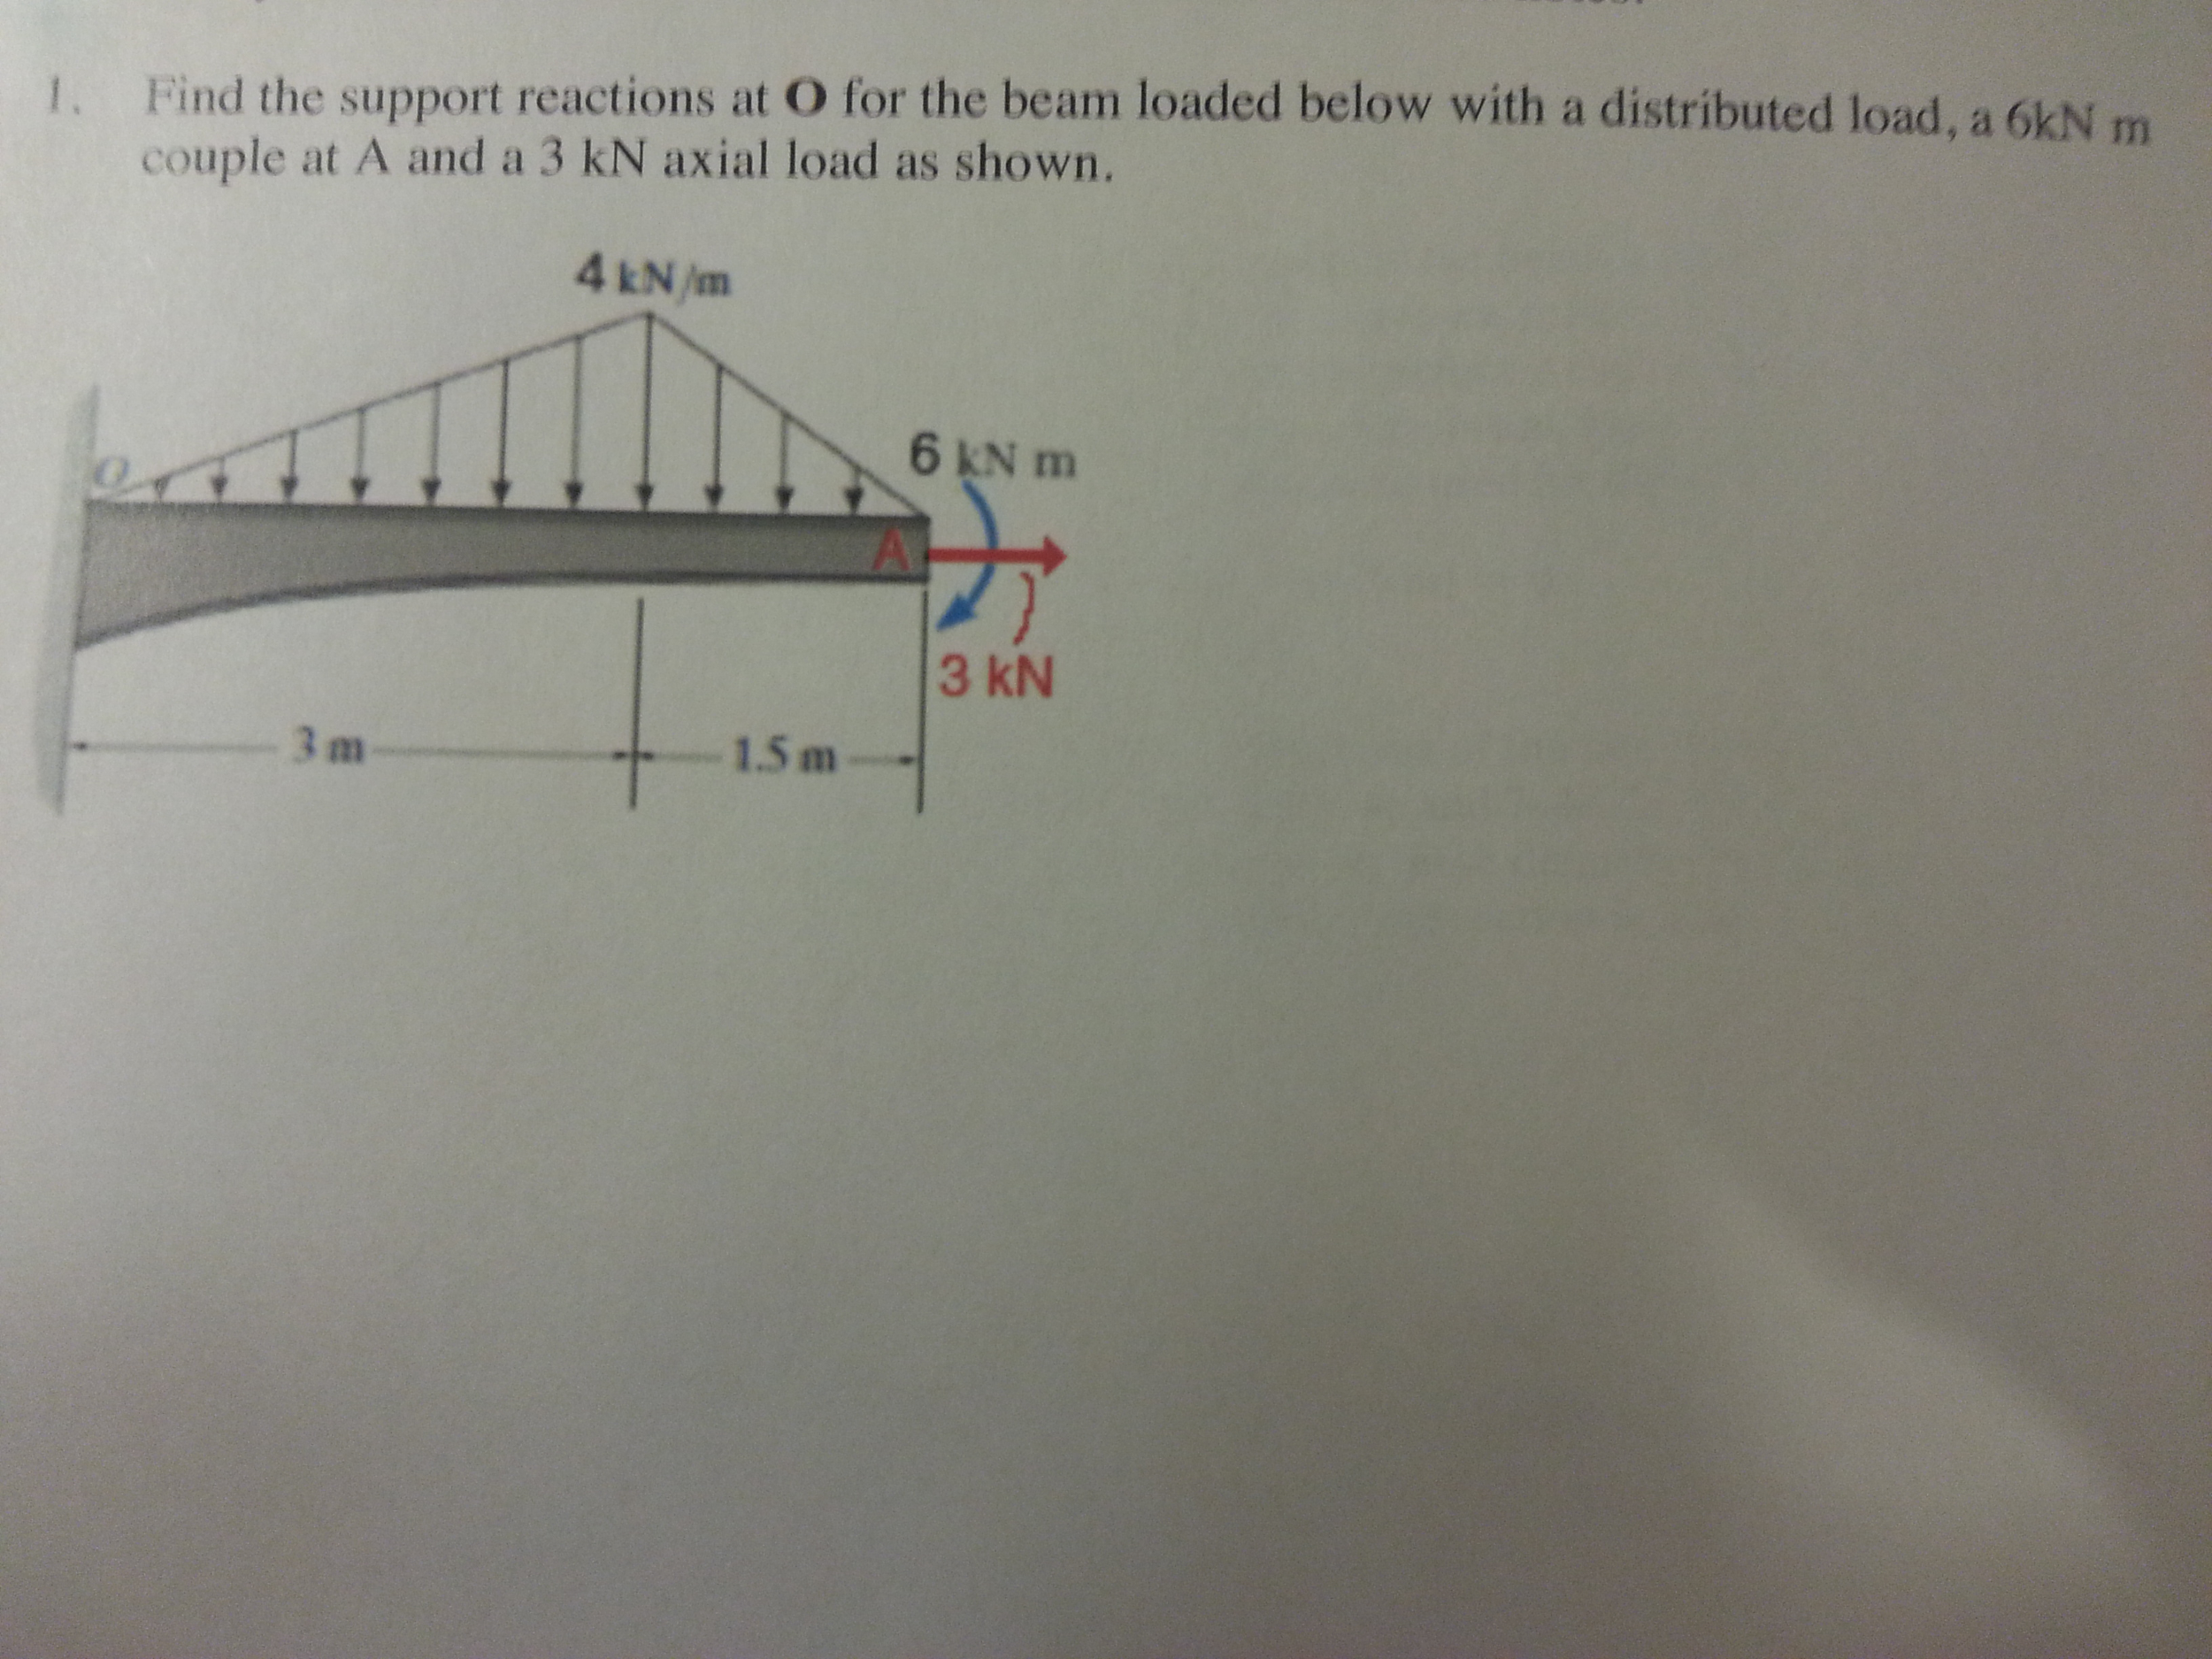 Determine support reactions at O for beam loaded w